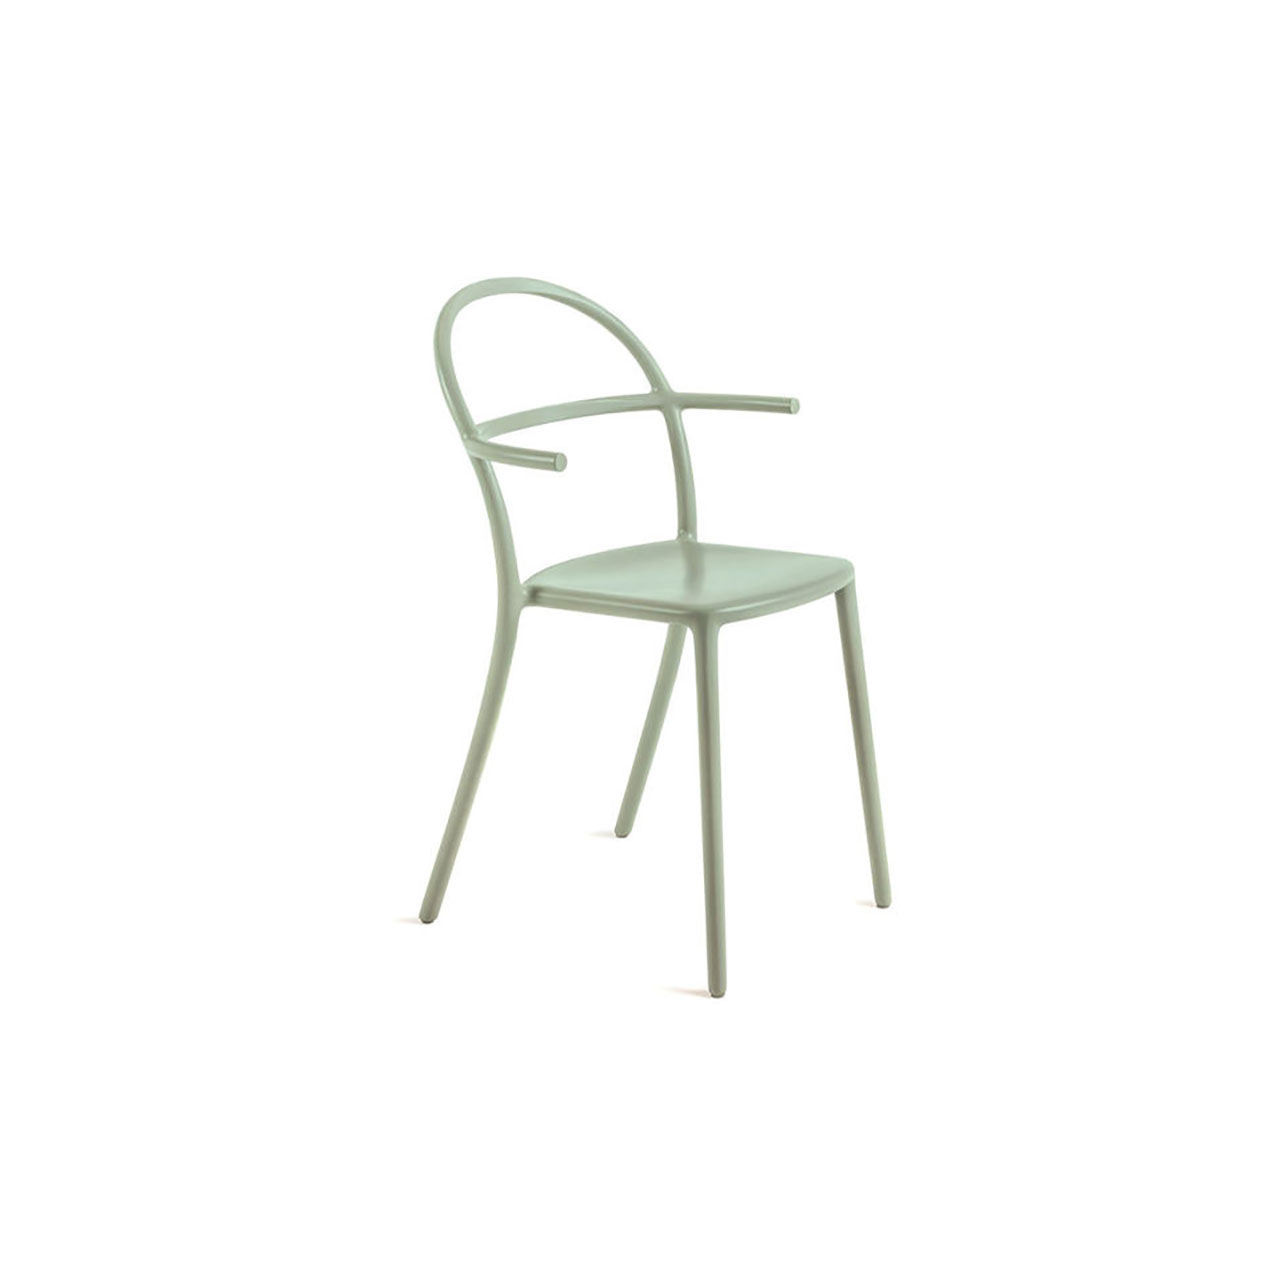 Generic Chair C Set of 2 in Sage Green by Kartell